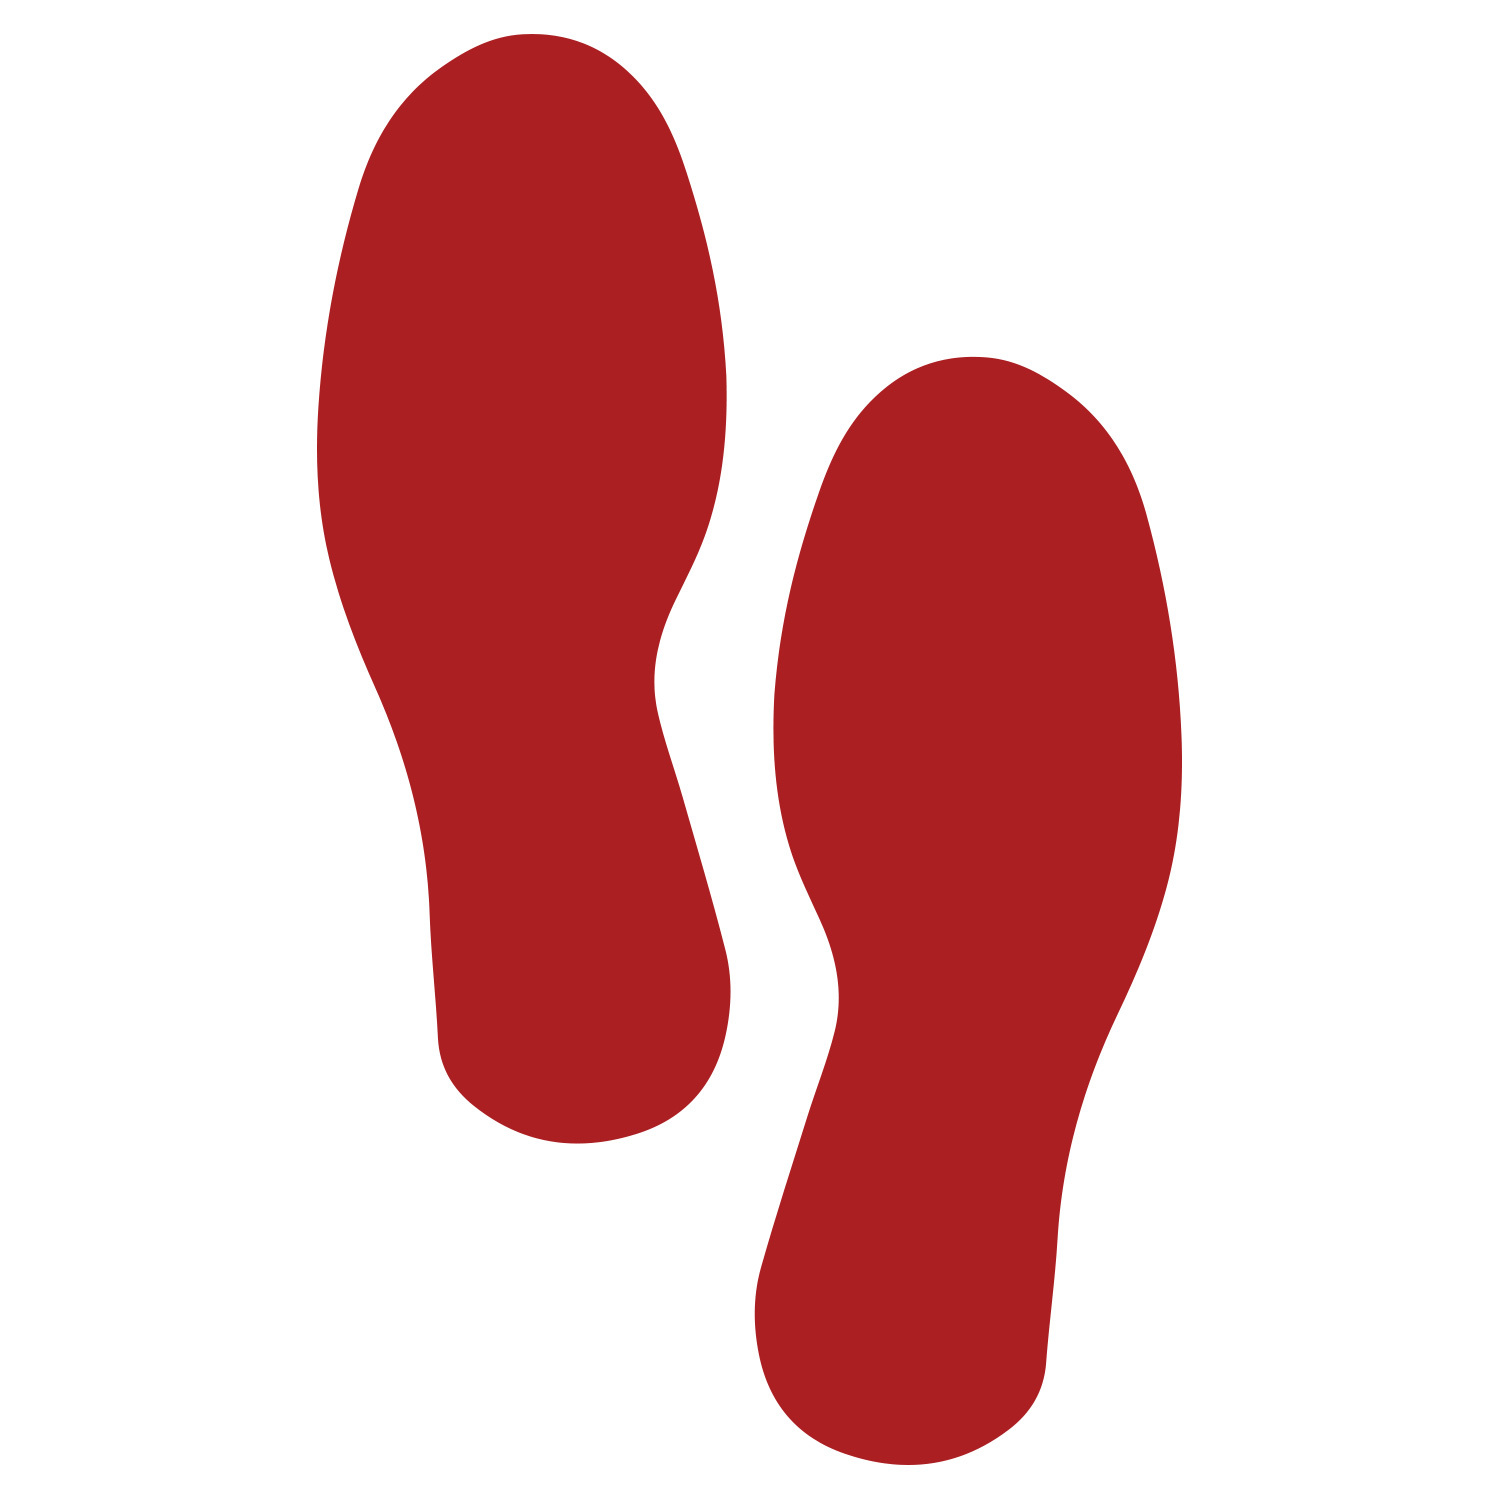 Primary image for LiteMark Youth Size Small Red Removable Footprint Decals Pack of 16 (8 Pairs)